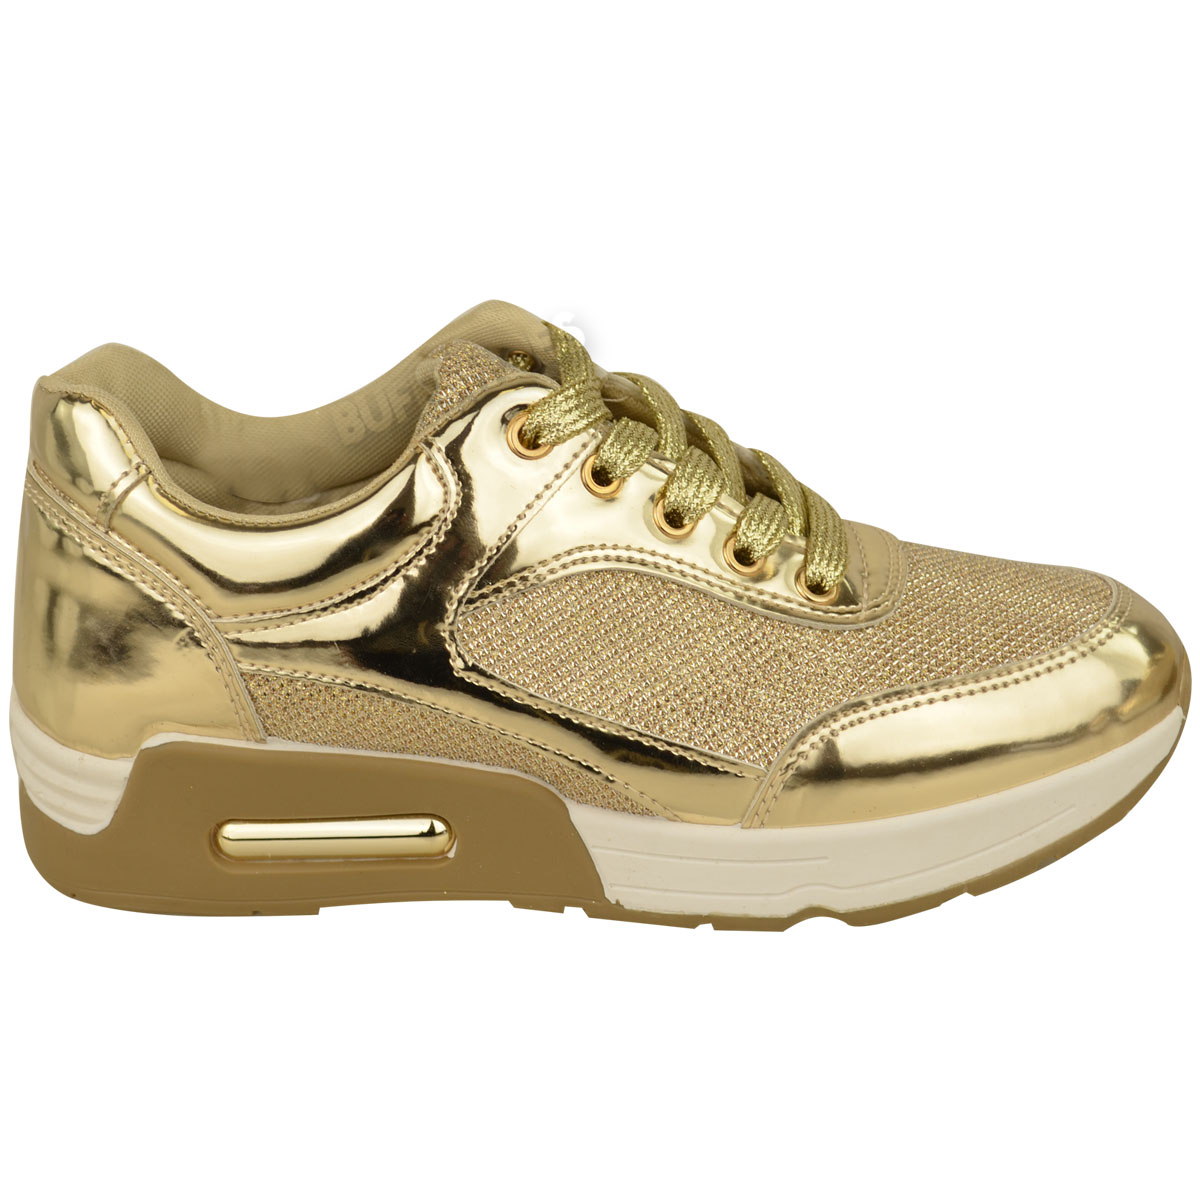 Find great deals on eBay for women metallic shoes. Shop with confidence.